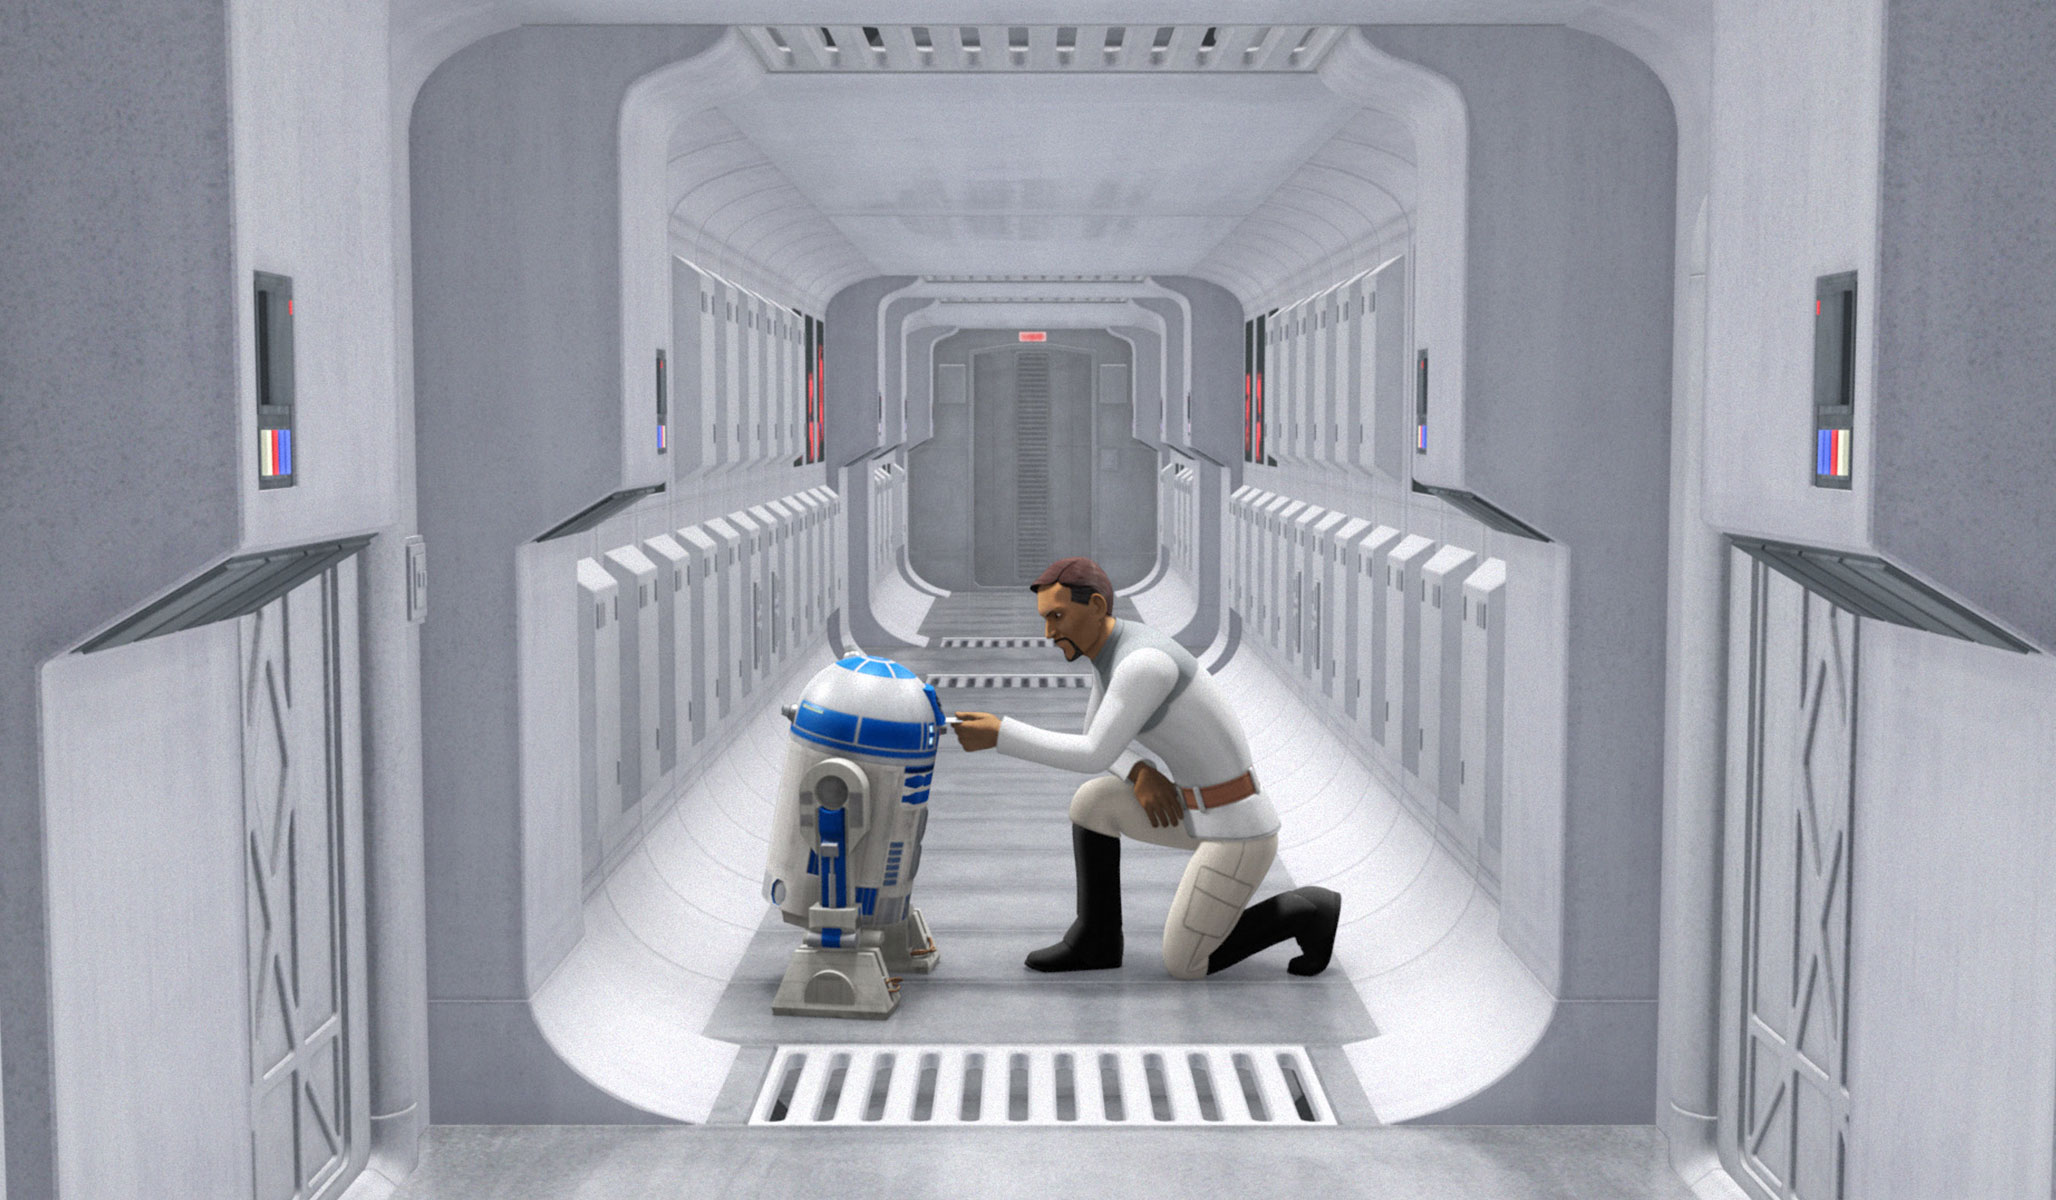 Bail Organa giving some orders to R2-D2 in The Clone Wars